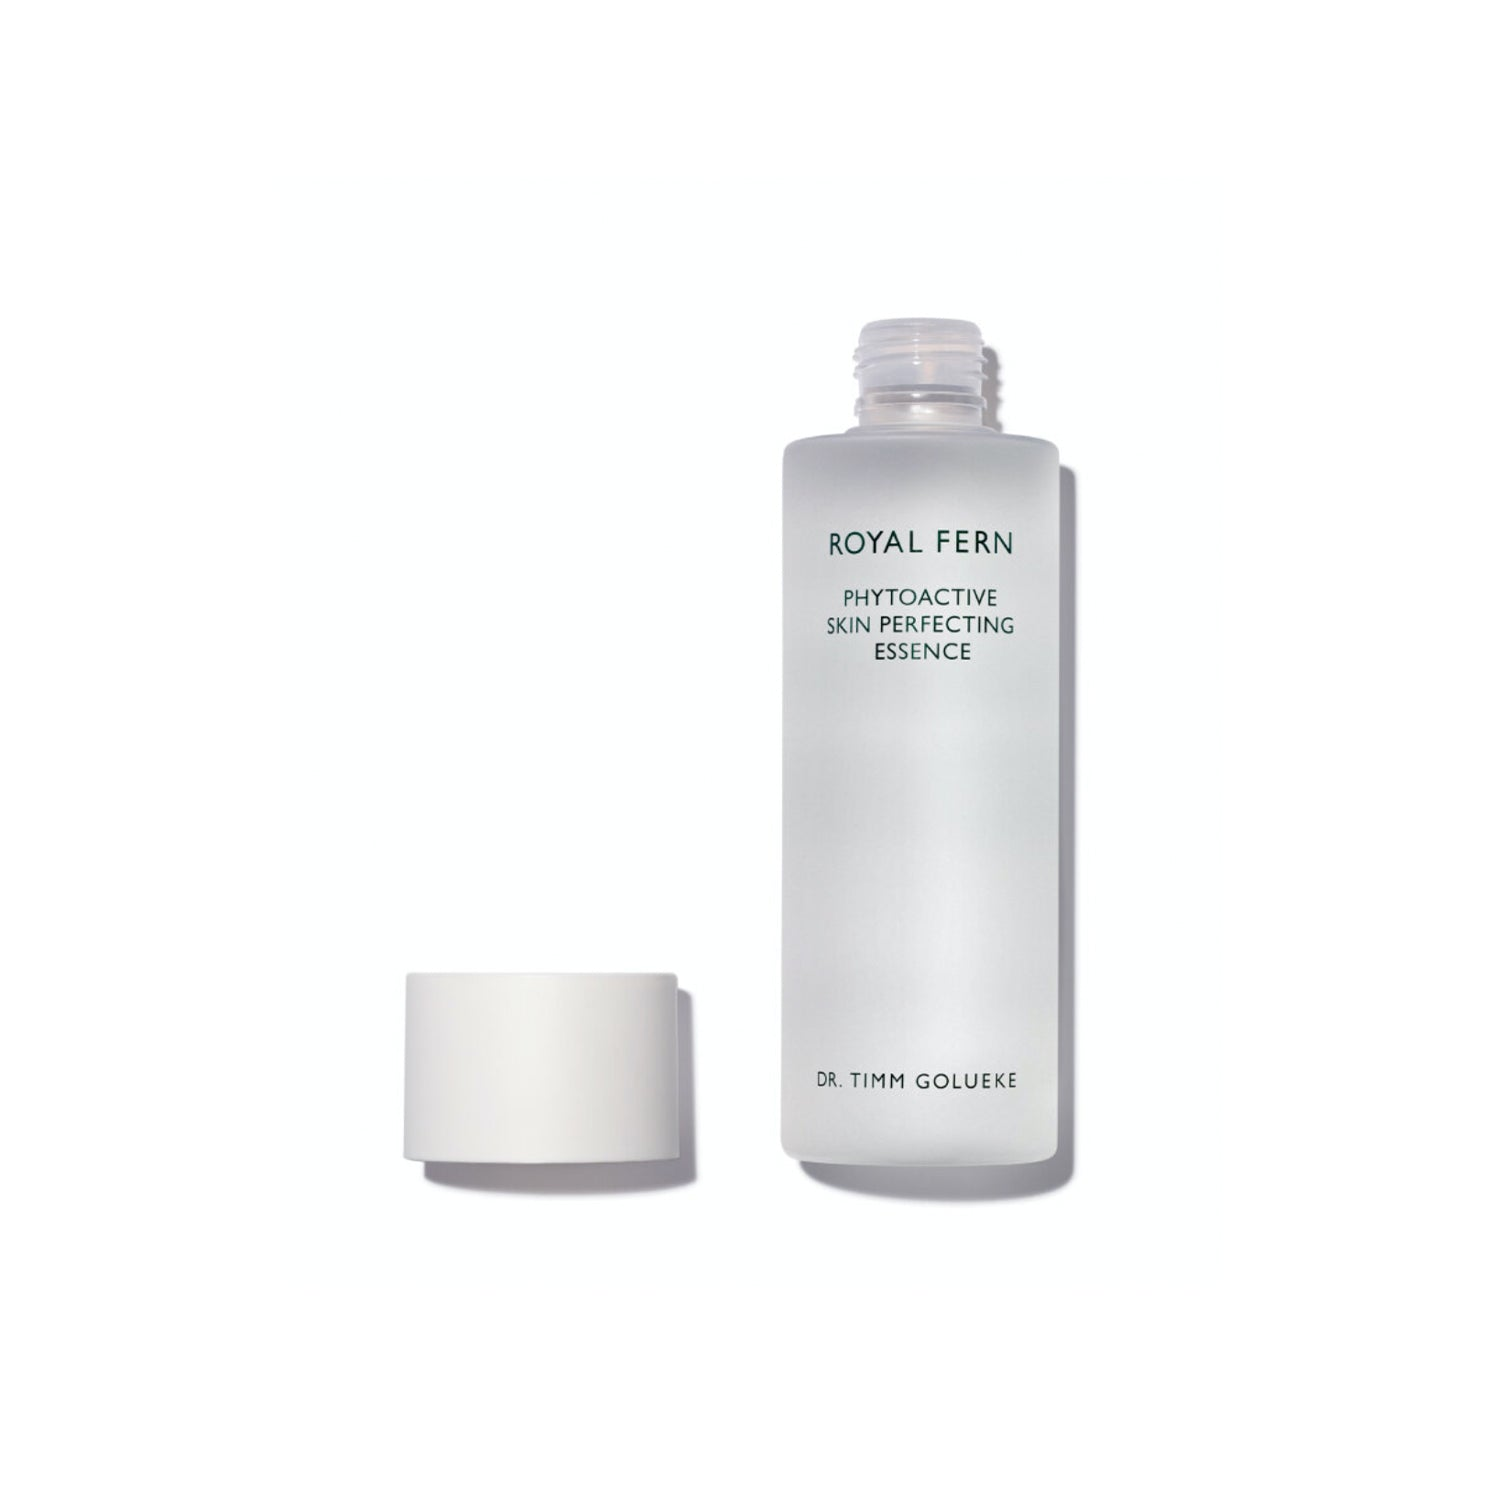 Phytoactive Skin Perfecting Essence